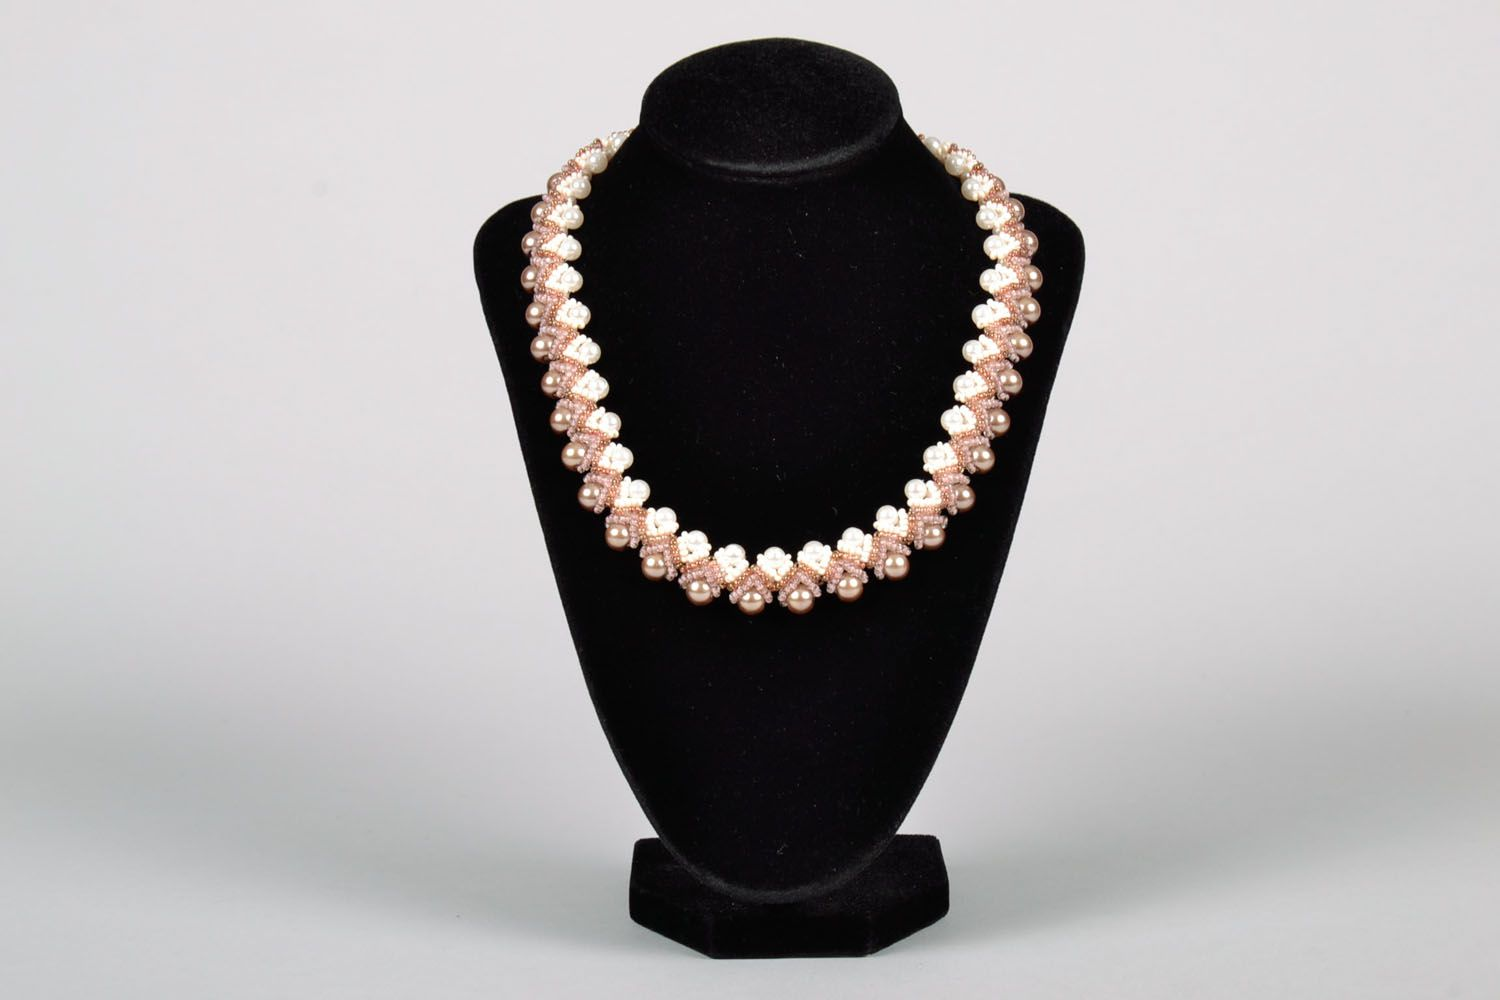 Necklace made of artificial pearl photo 2